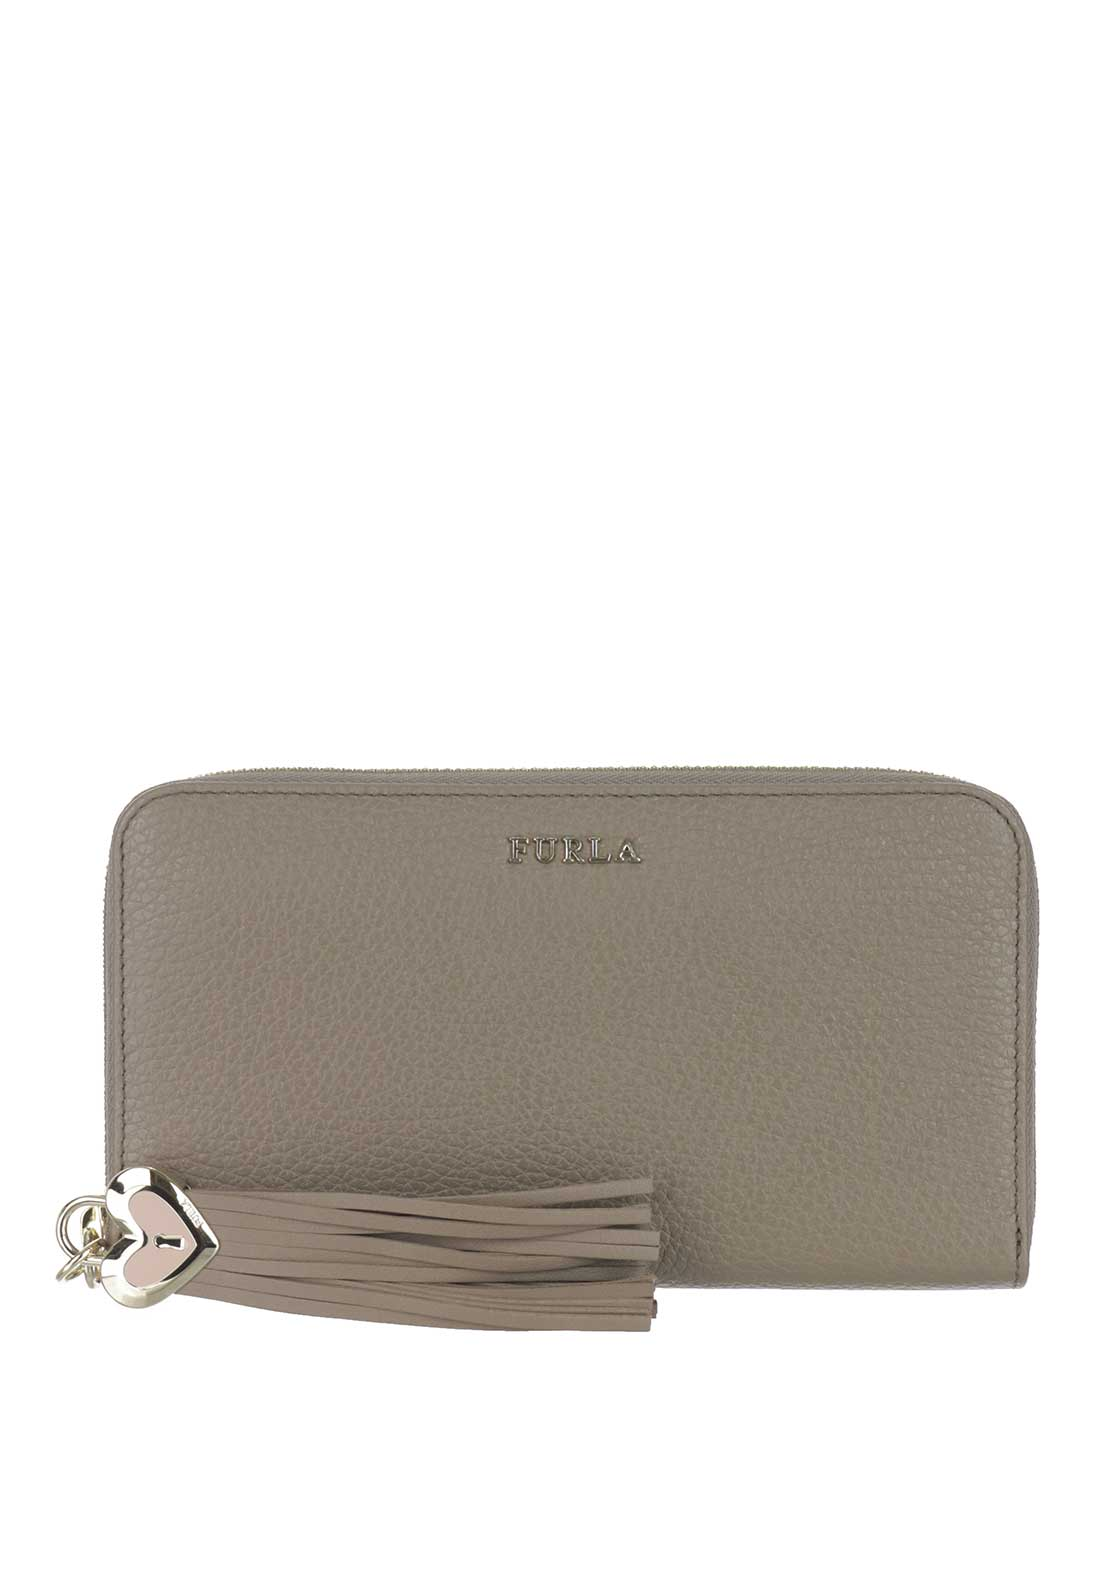 Furla Cuore Leather Zip Around Purse, Brown